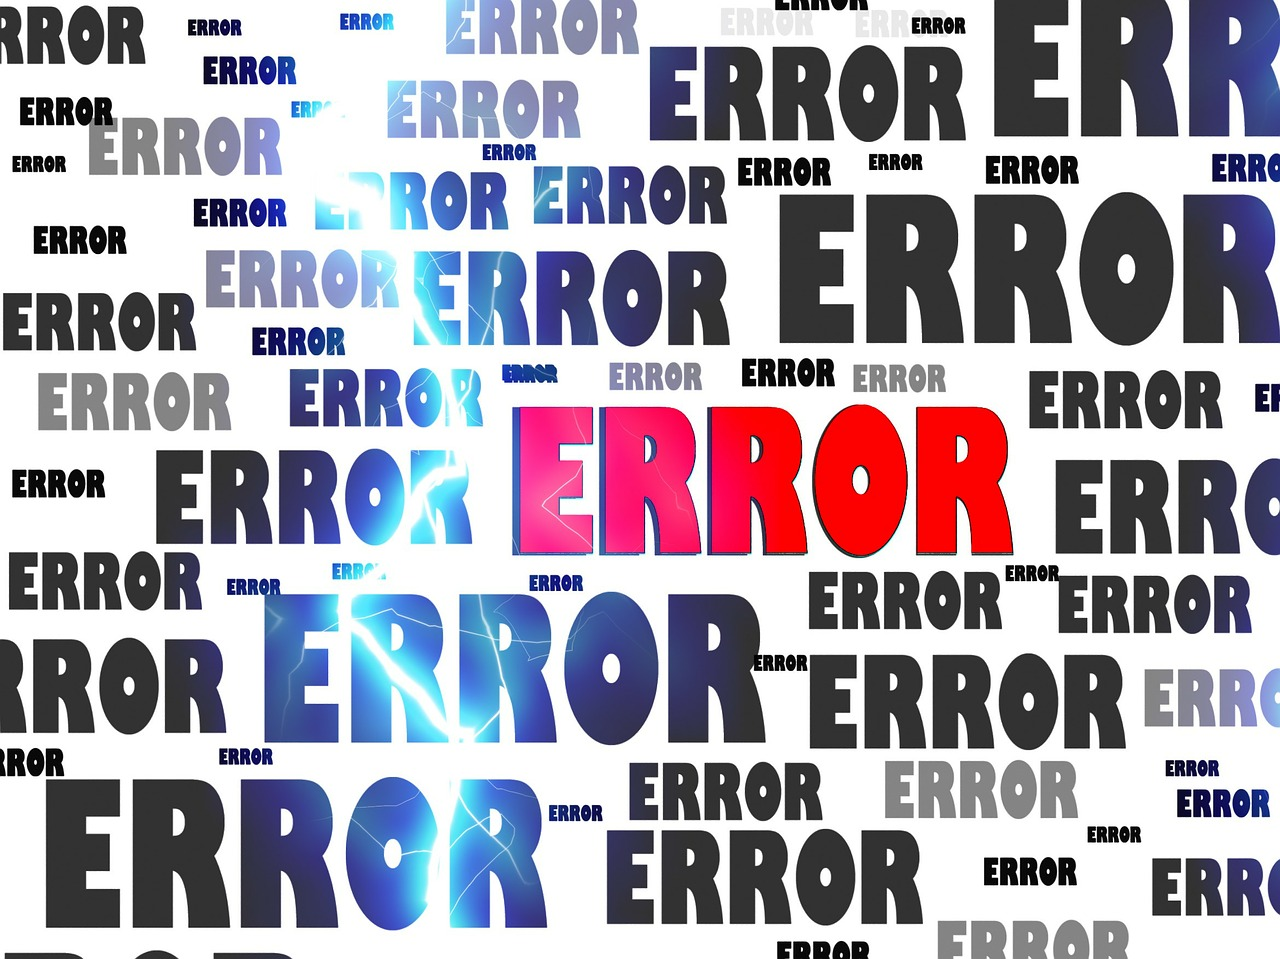 How to raise or throw an error in QlikView or Sense